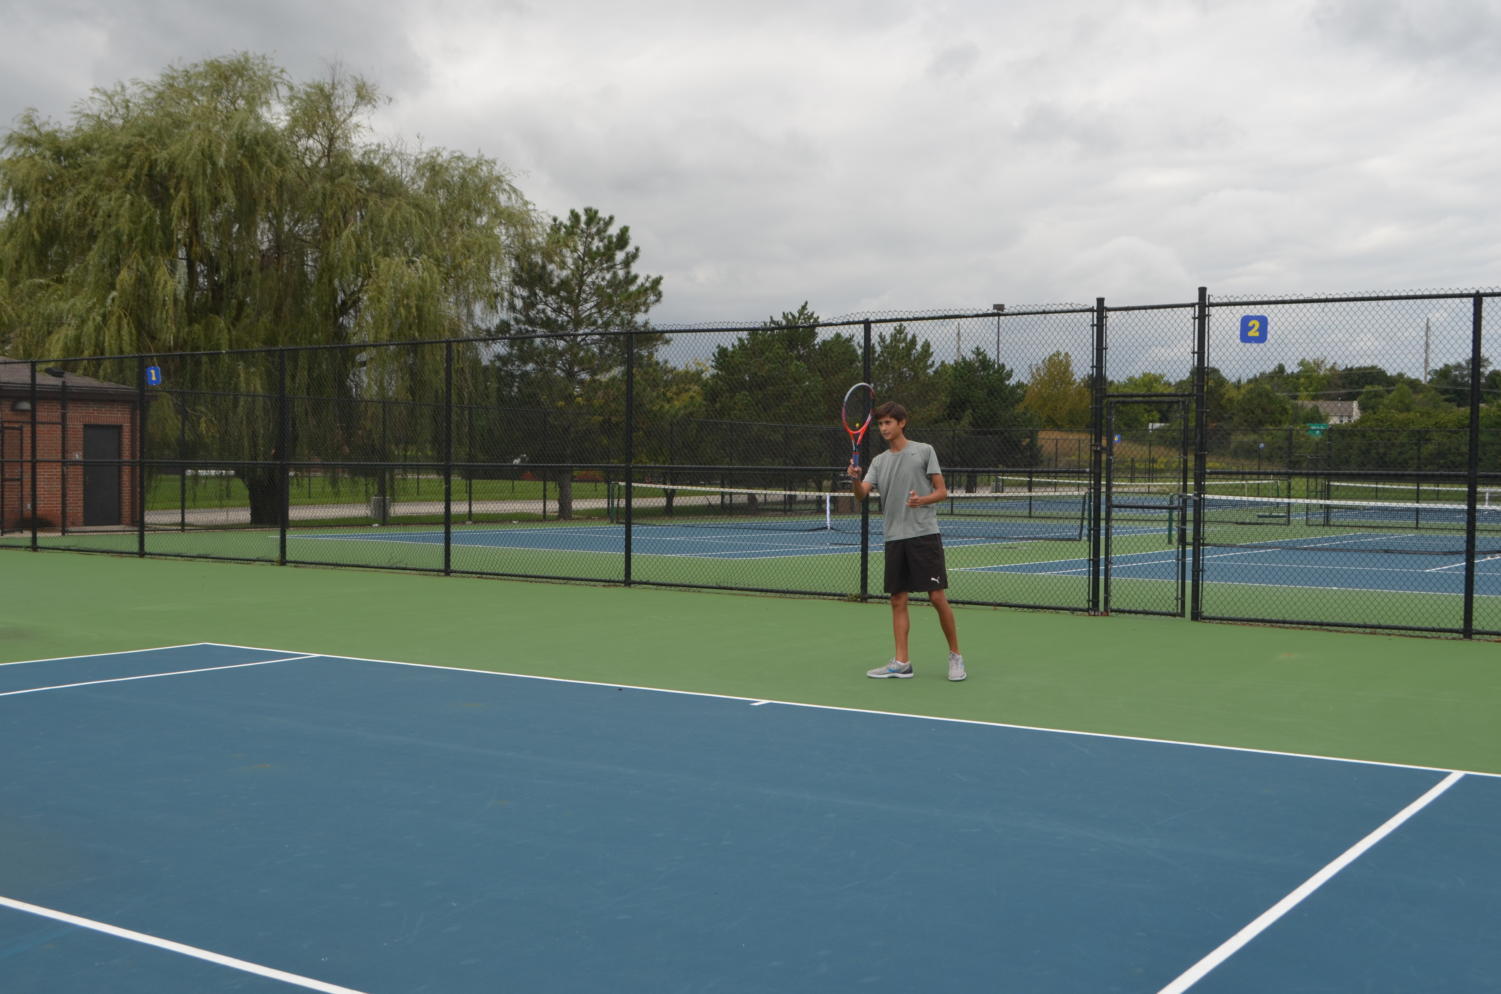 Will Brune, varsity tennis player and senior, hits the tennis ball during practice. The men's tennis team plays at the MIC Championship on Sept. 13 at Ben Davis High School.